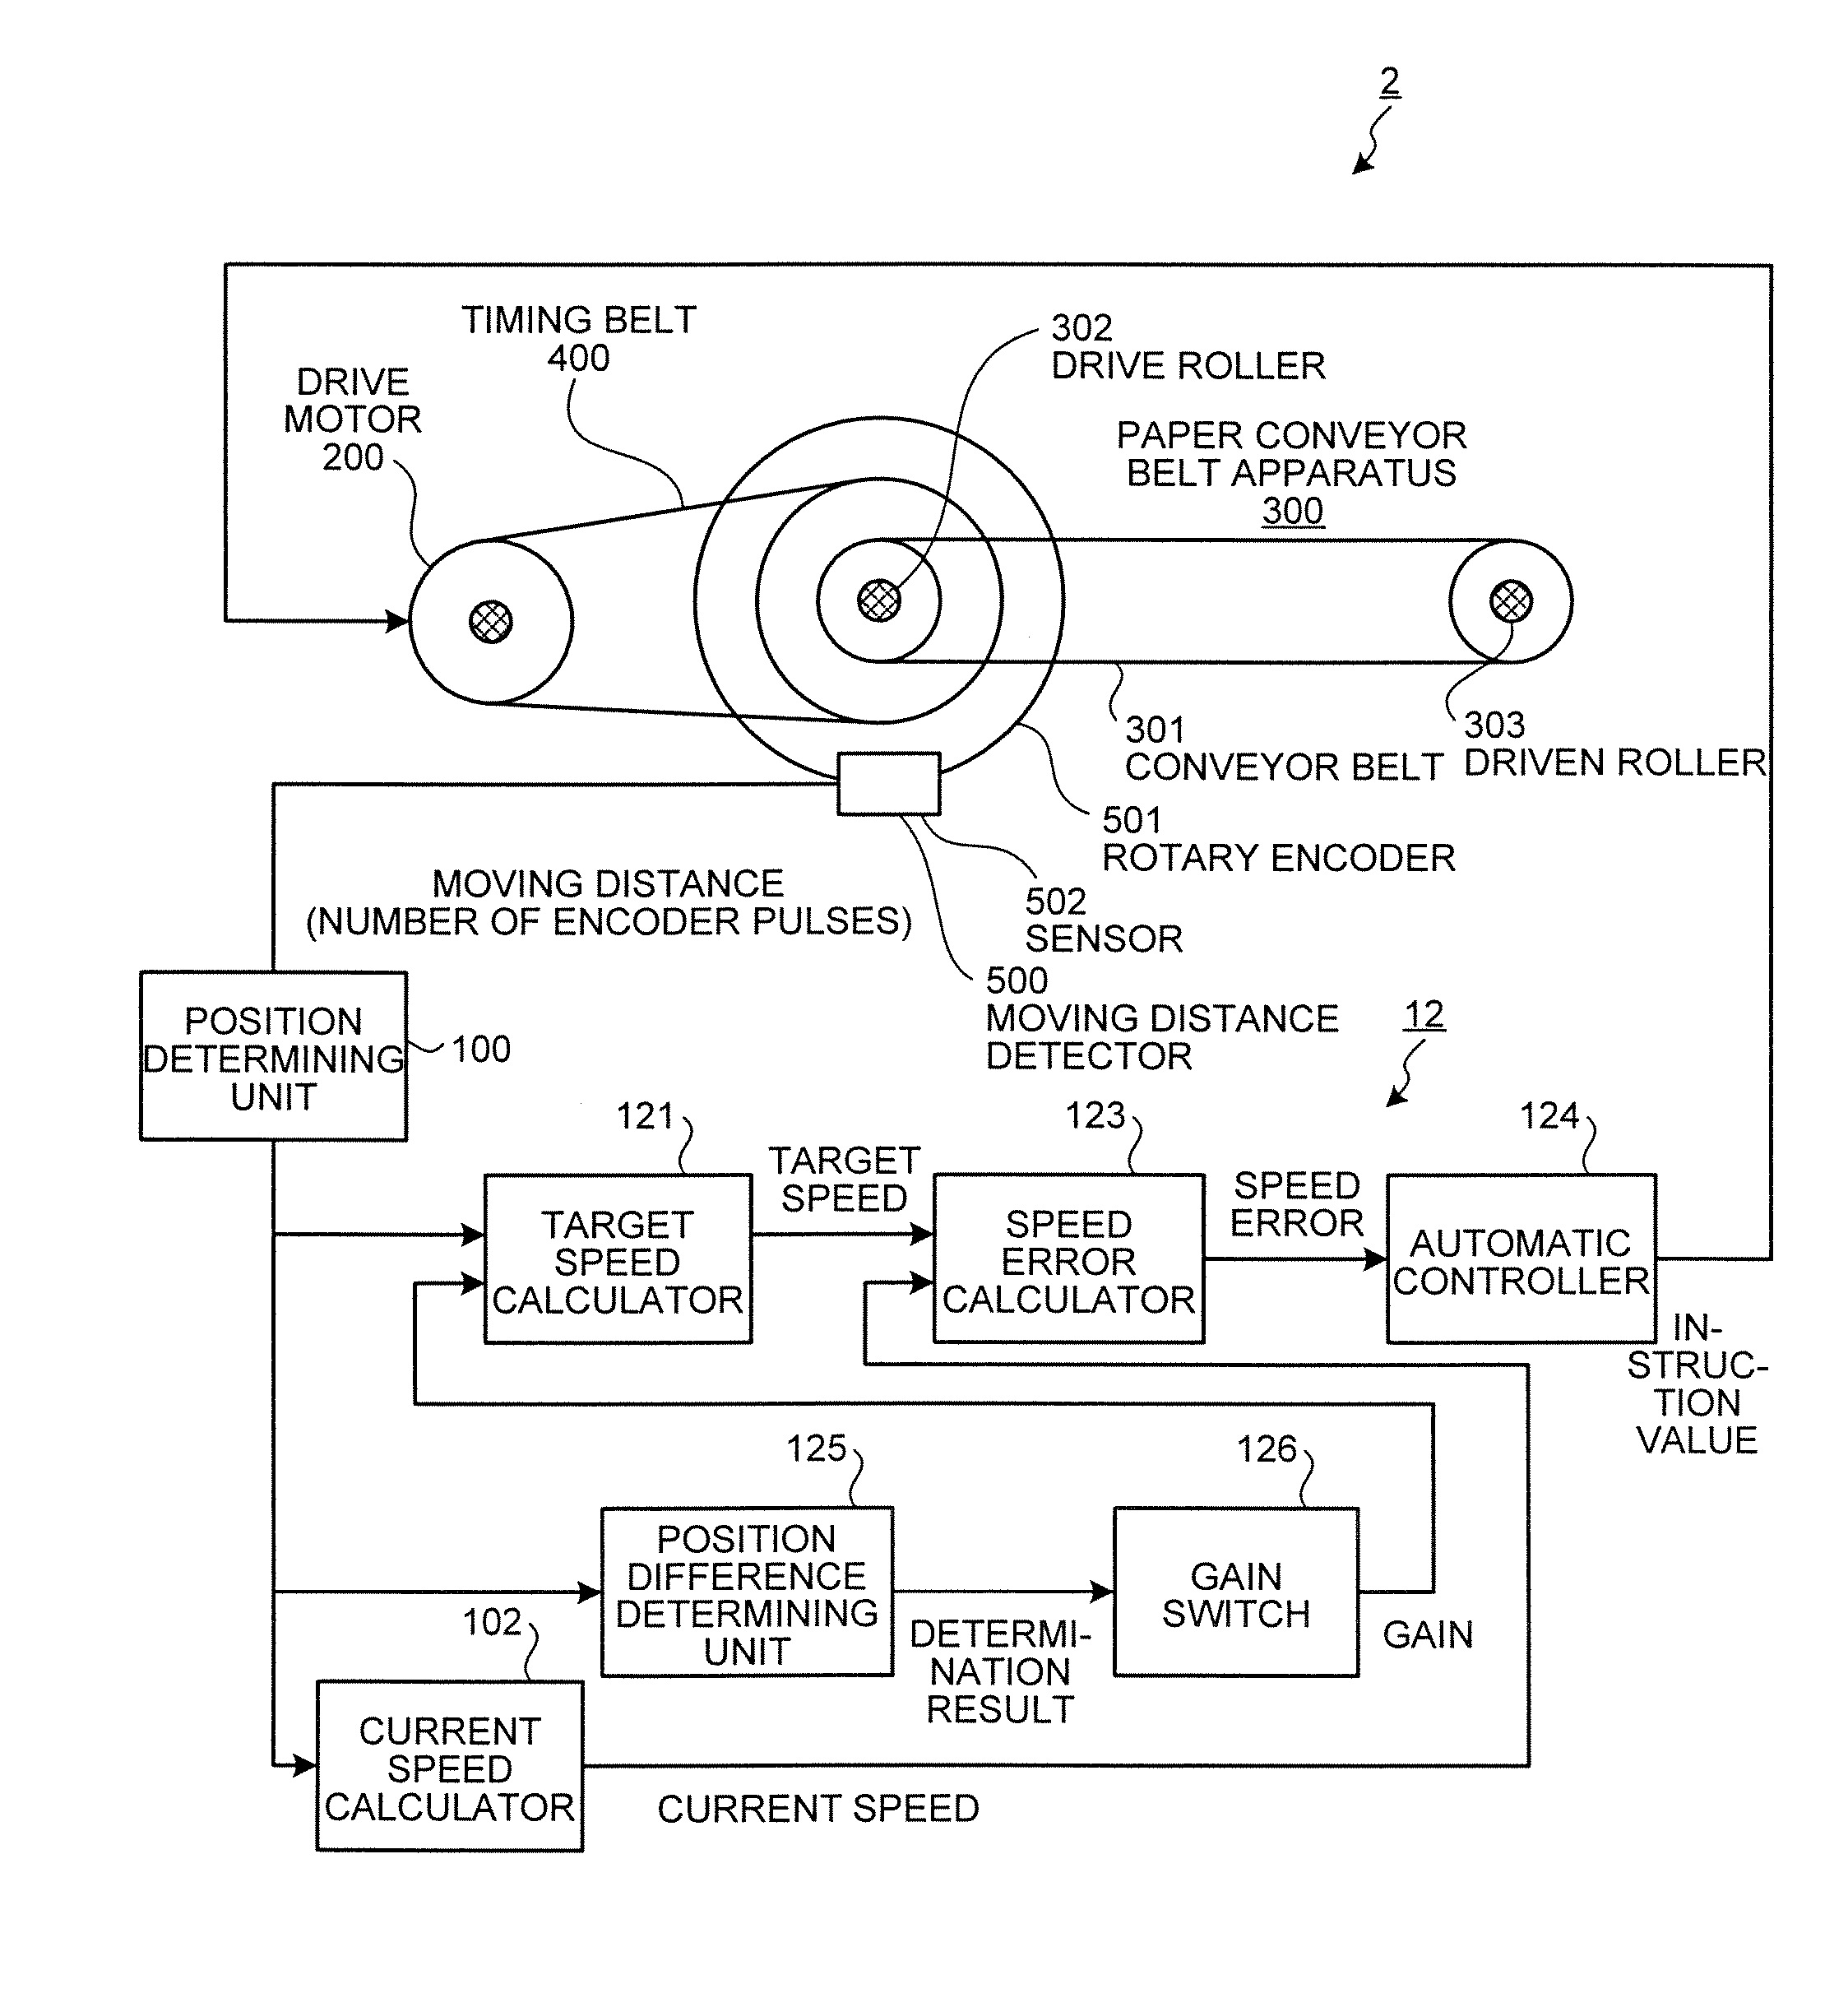 Patent US20070001010 - Positioning controlling apparatus